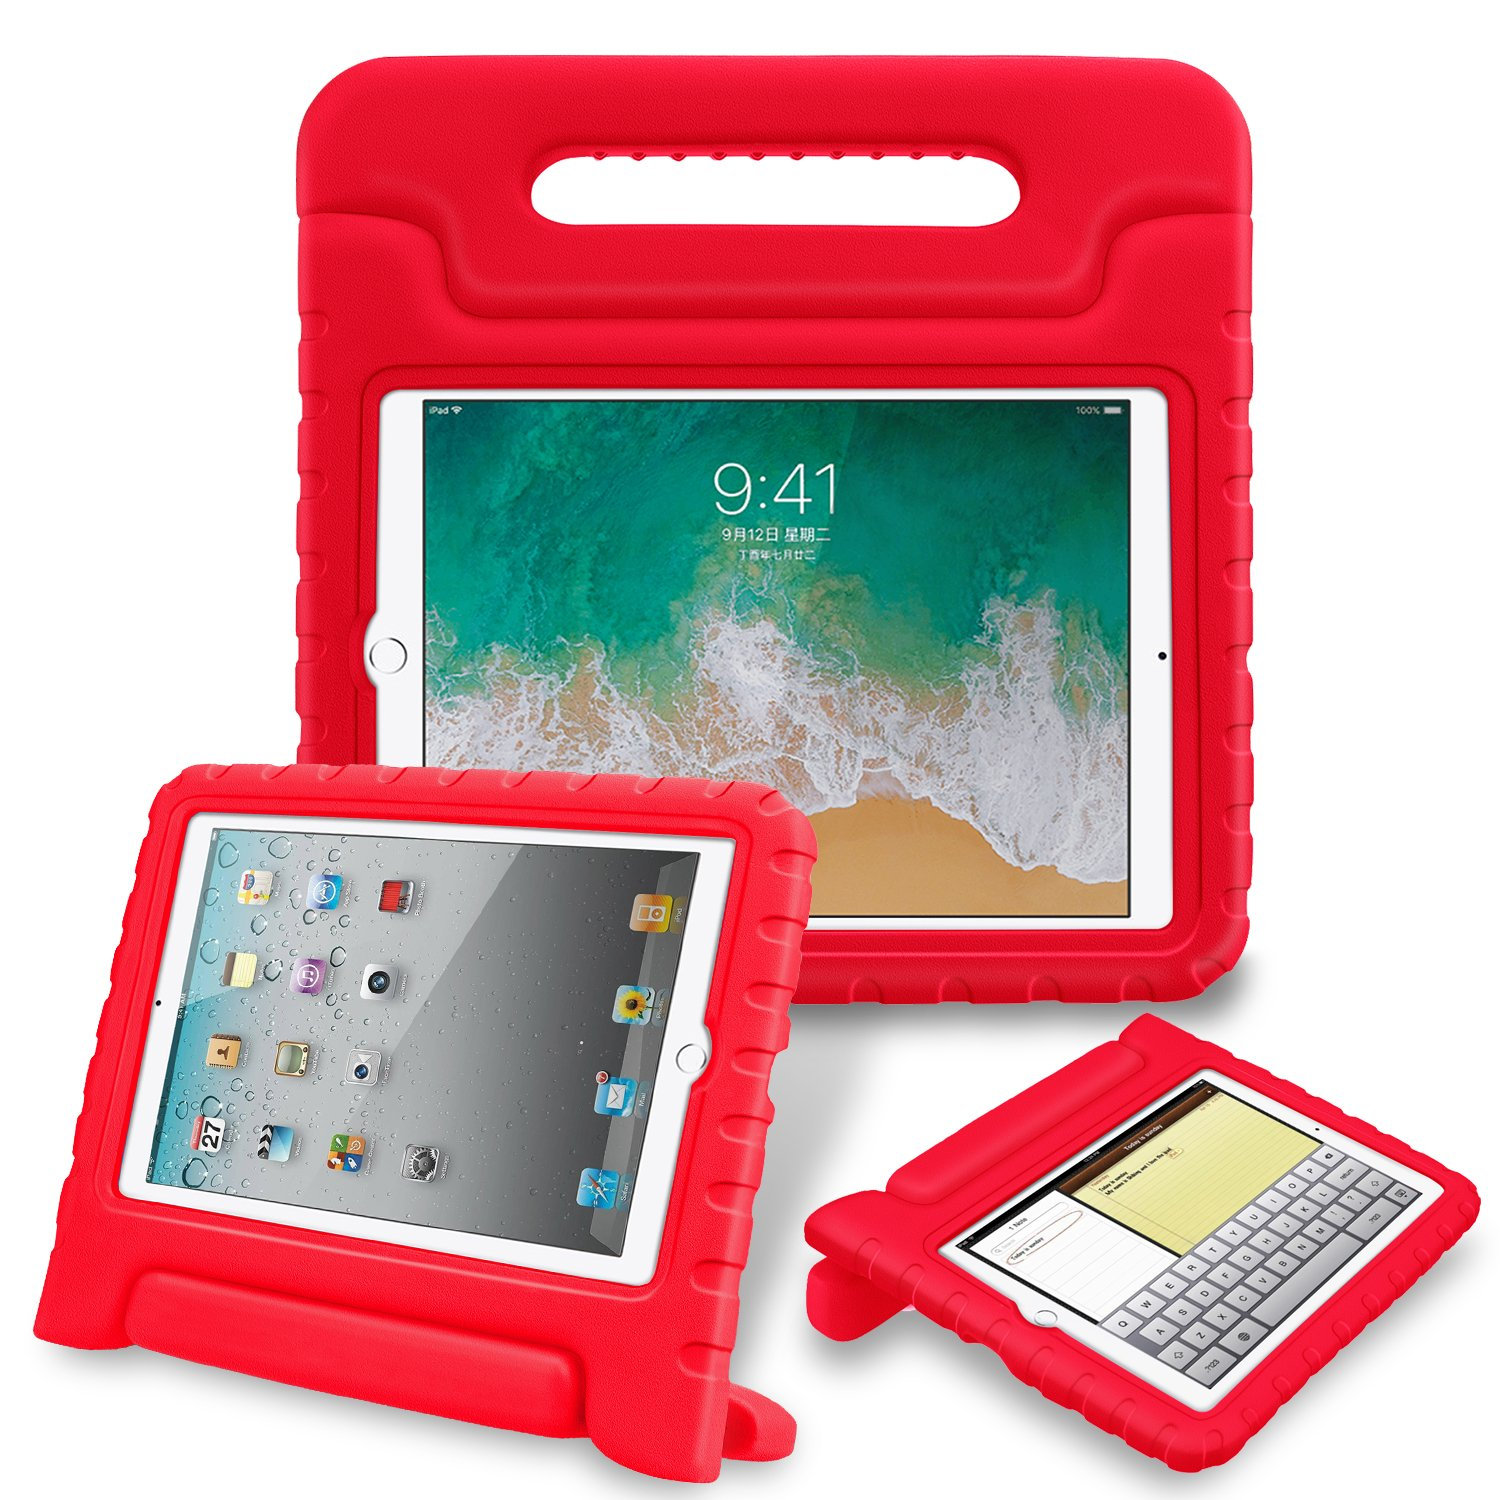 Fintie iPad mini 4 Case - Kiddie Series Light Weight Shock Proof Convertible Handle Stand Cover Kids Friendly for Apple iPad mini 4 (2015 Release), Red EPAB021US